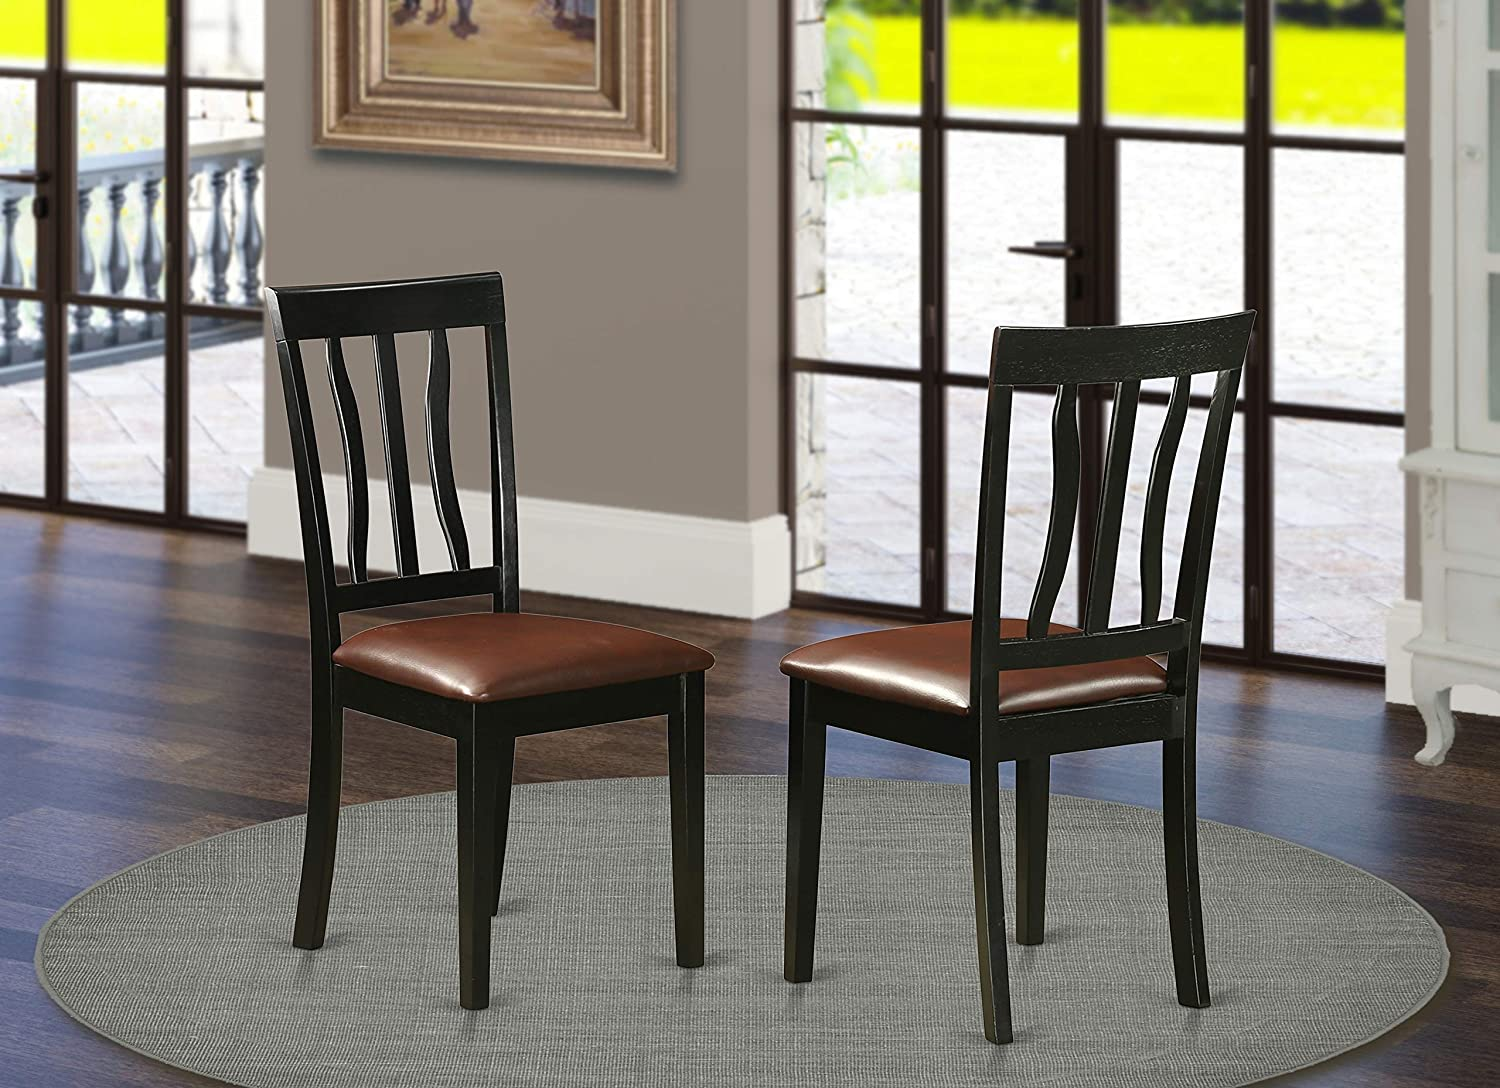 Amazon Com East West Furniture Antique Dining Room Chair Faux Leather Seat And Black Finish Solid Wood Frame Padded Dining Chair Set Of 2 Chairs